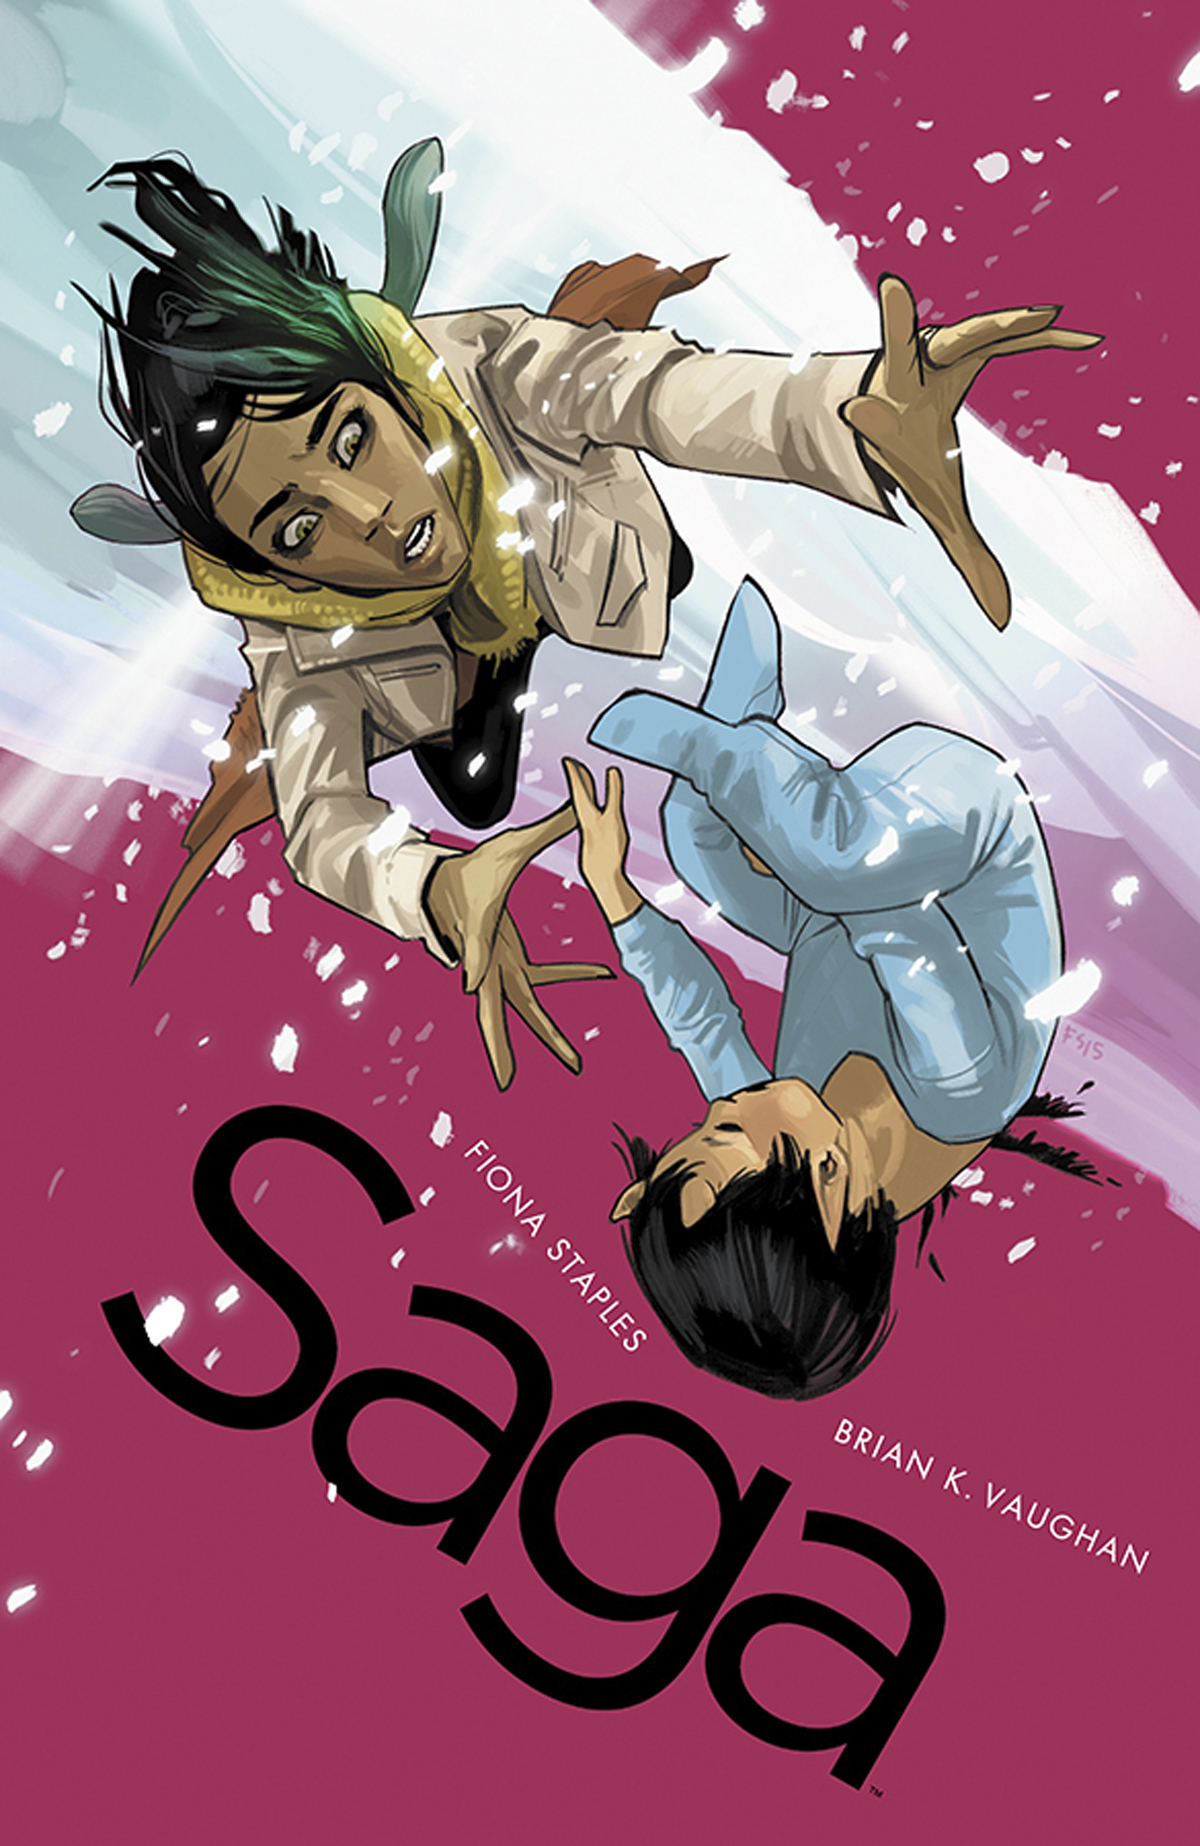 Saga #28  was first released on 5/13/2015.